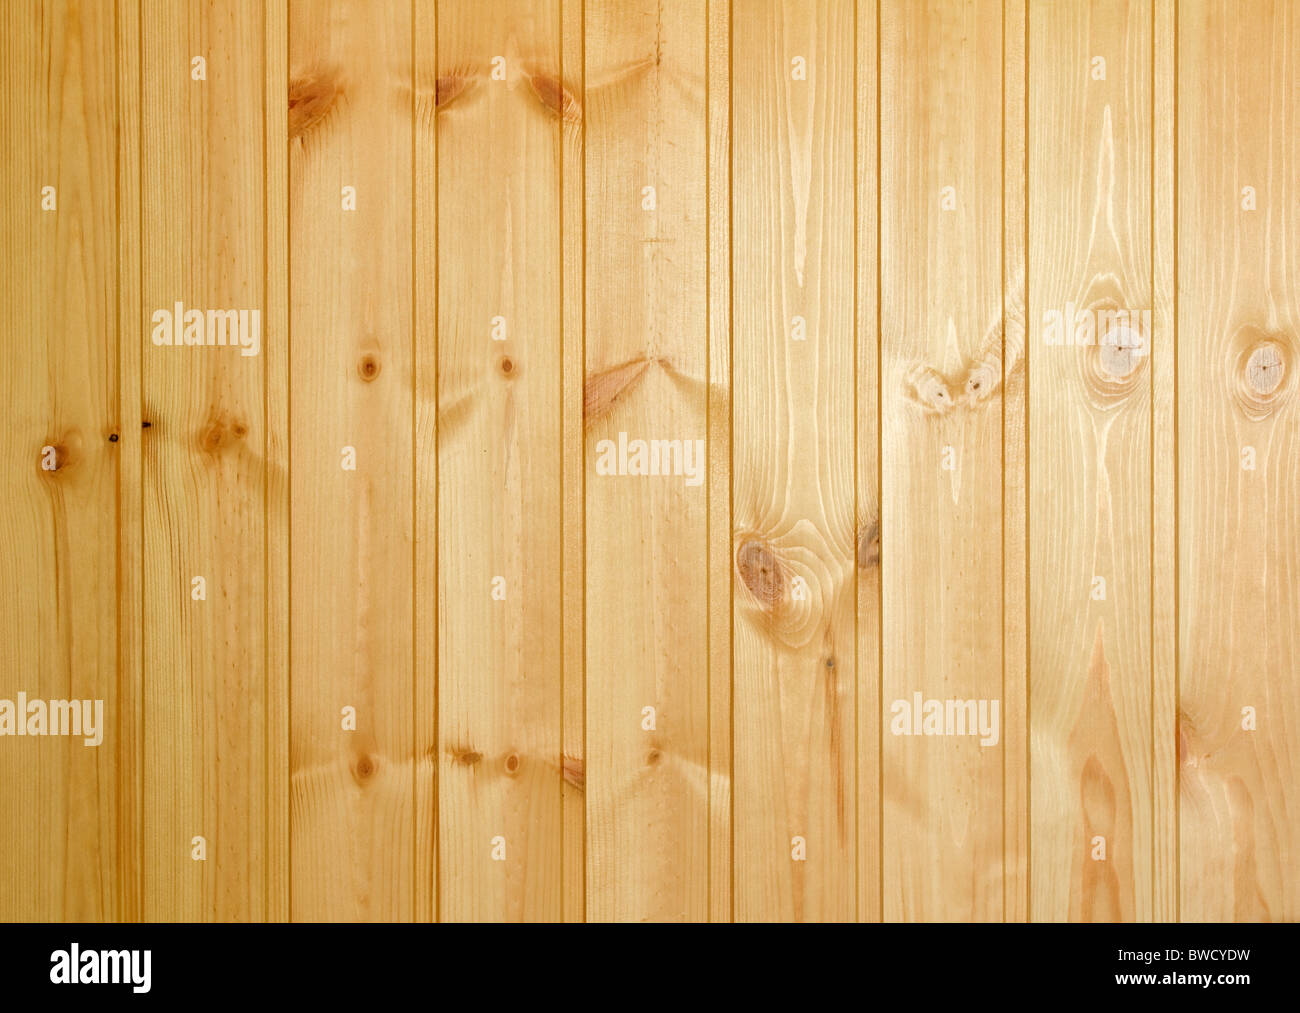 Bright decoration boards covered with clear varnish - Stock Image